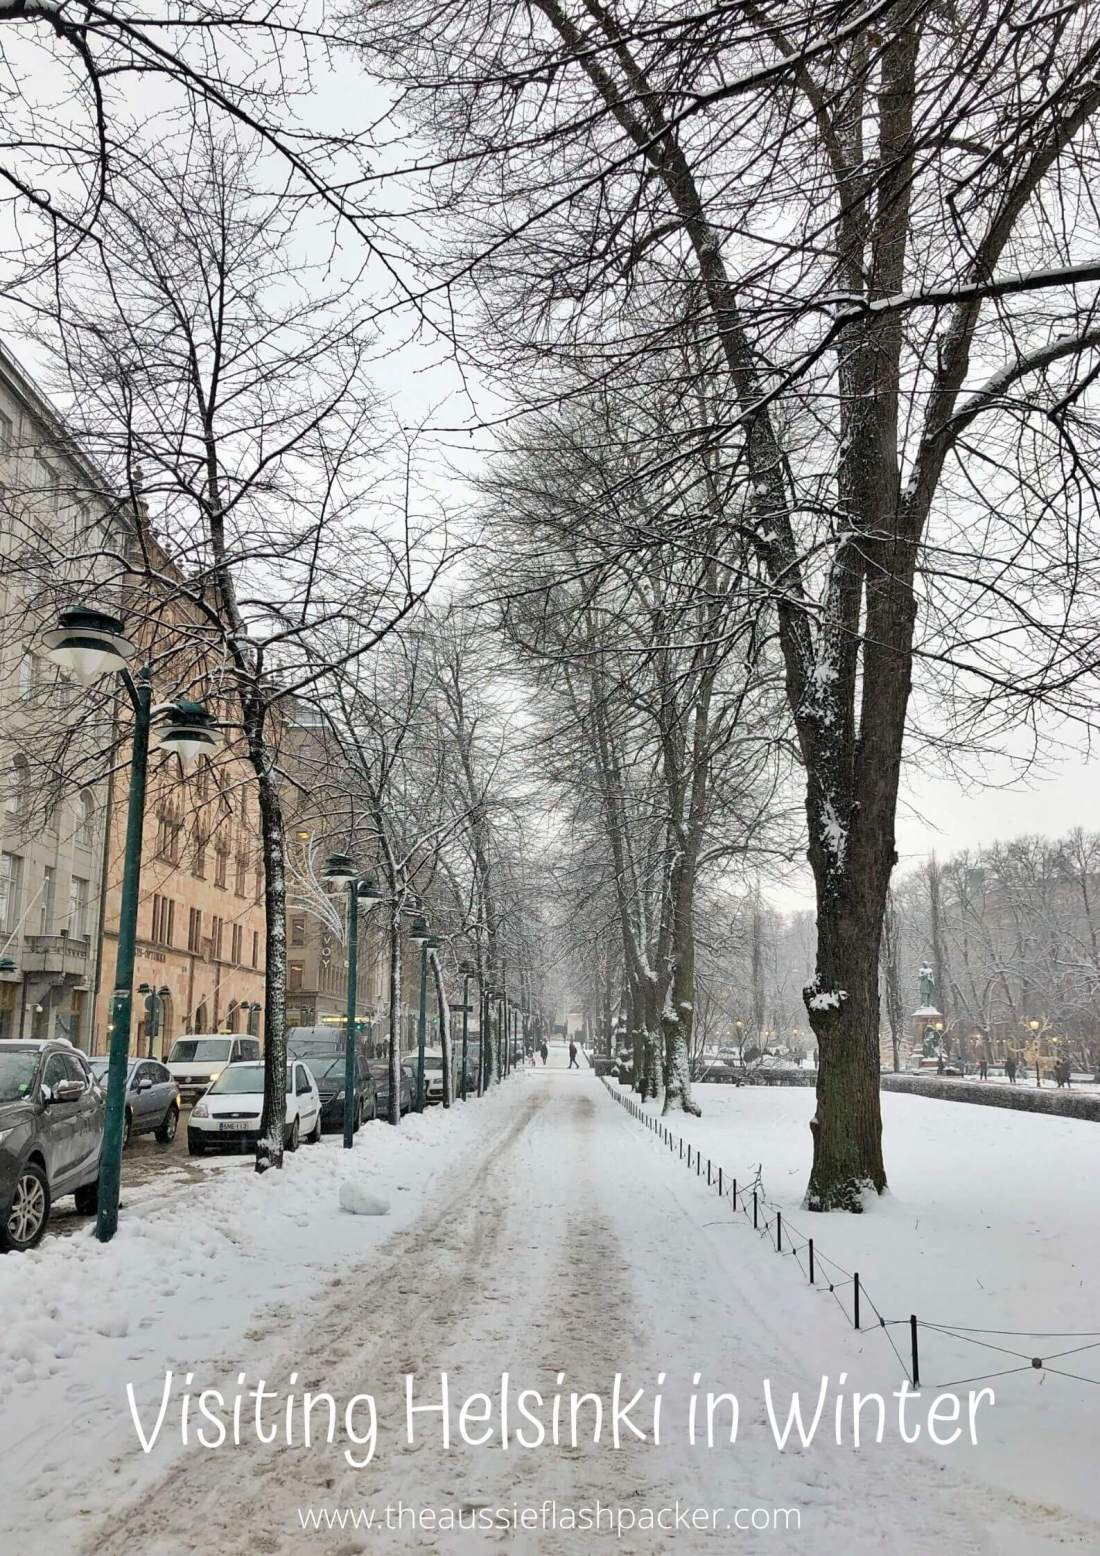 Visiting Helsinki in Winter